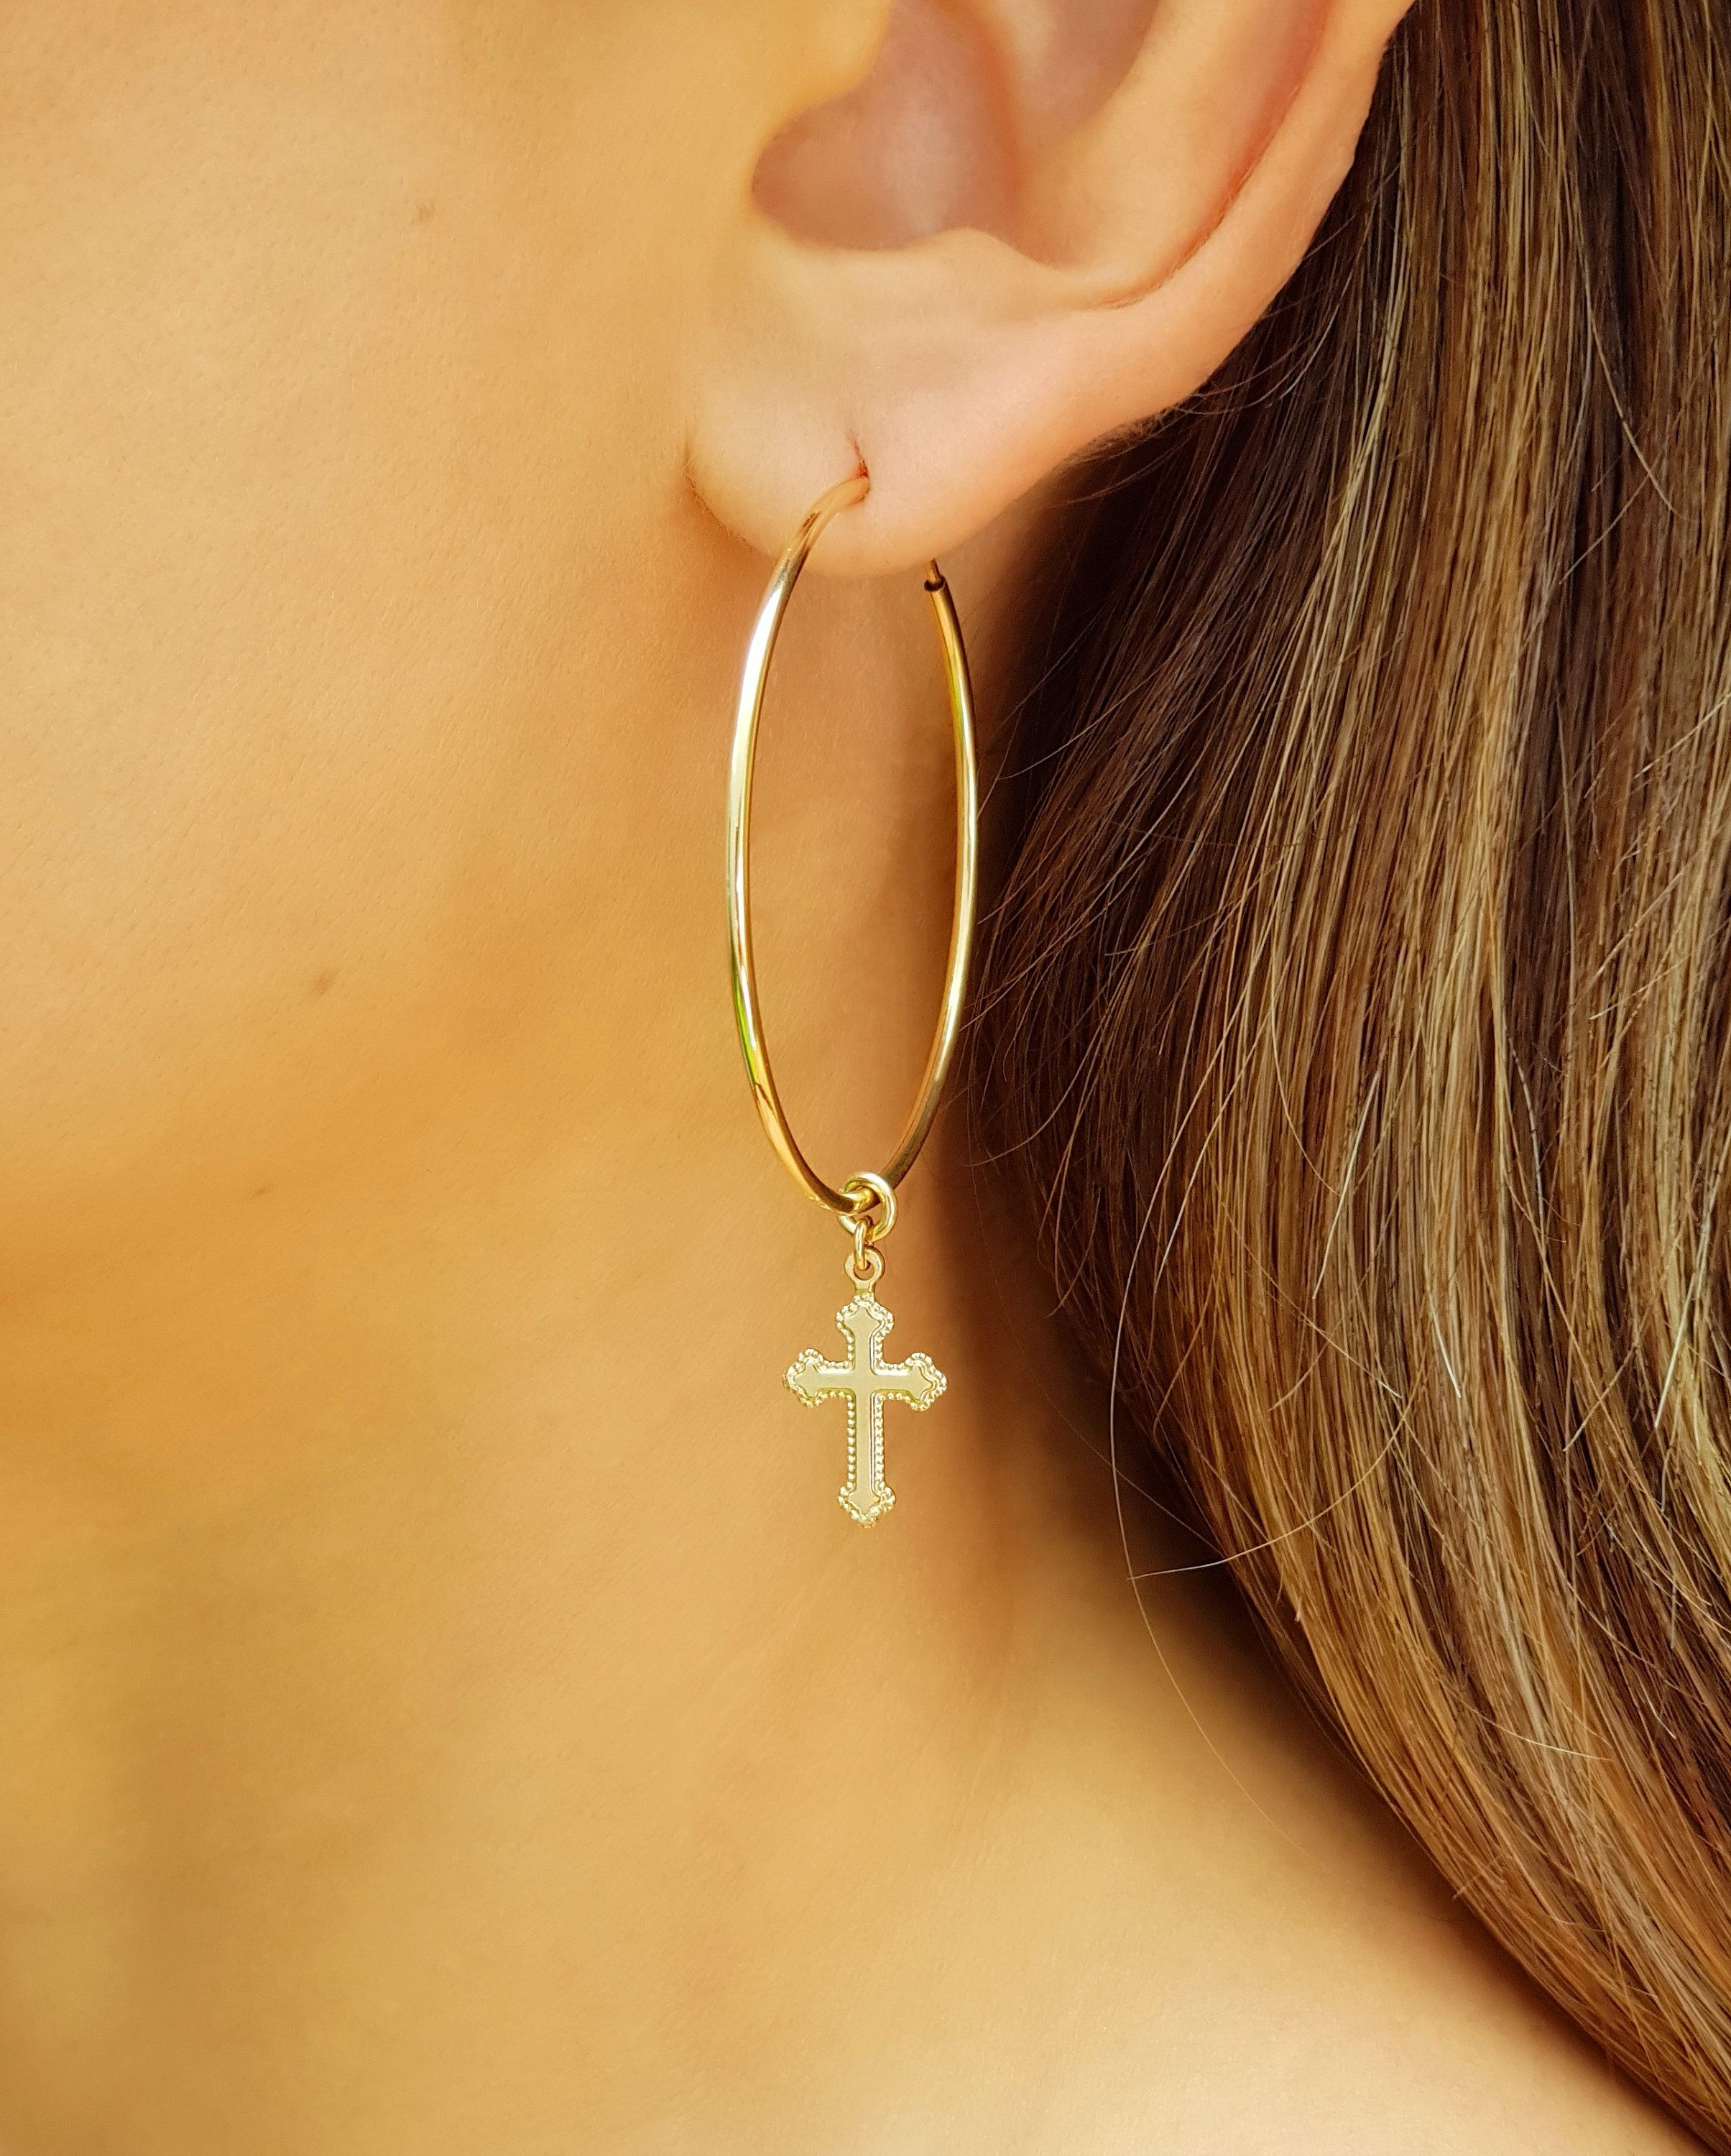 New Addition To My Etsy Small Cross Hoop Earrings Gold Filled